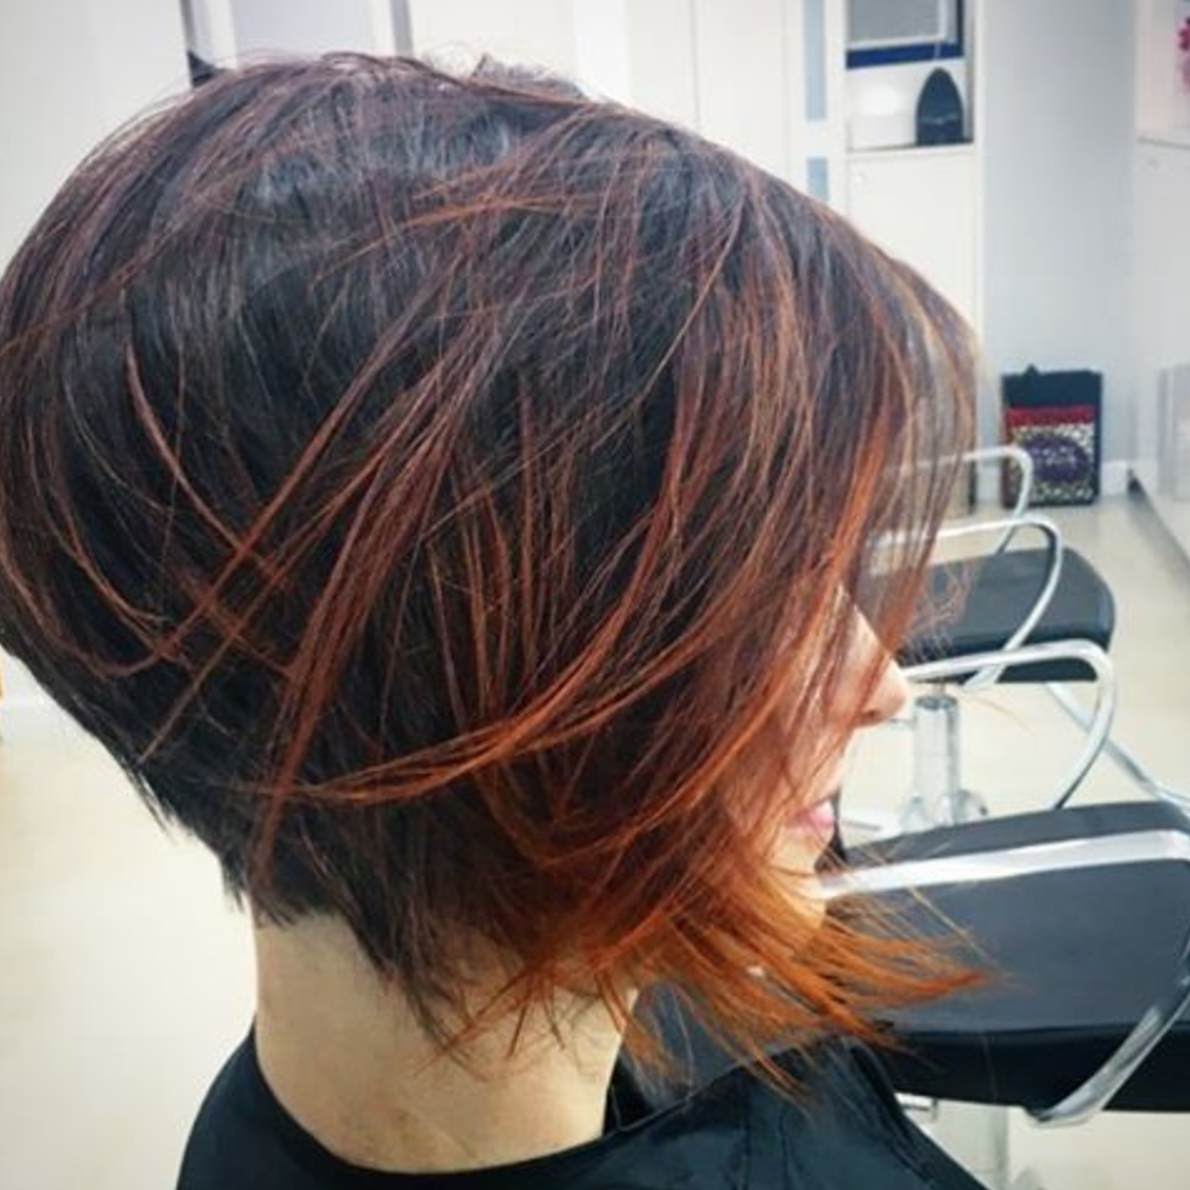 Hair Salons Latest Styles Cuts And Colors Lenvie Studio Gallery